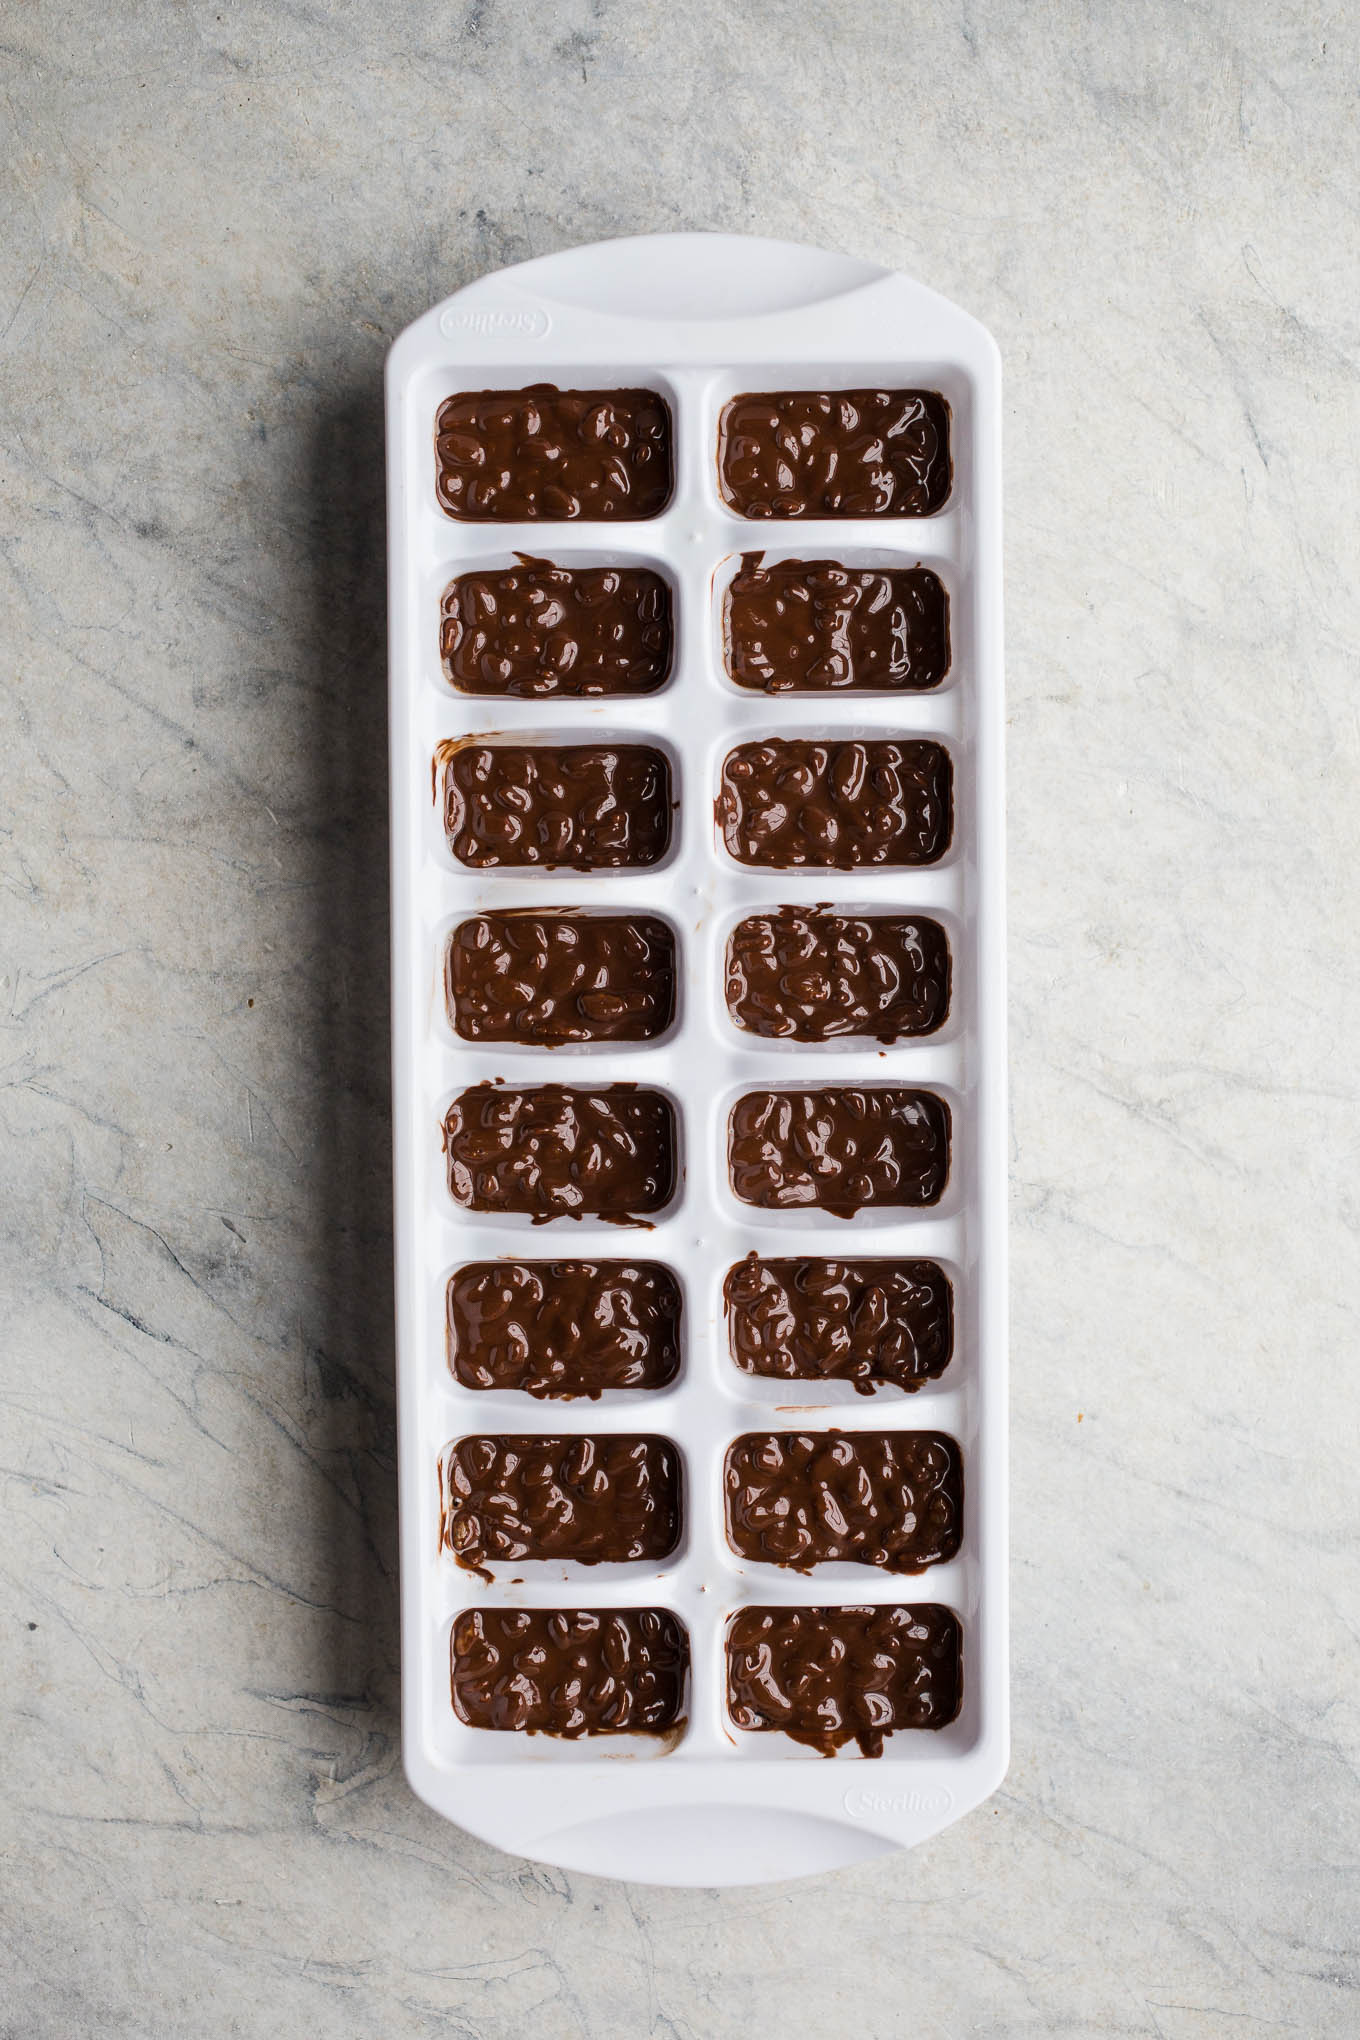 Homemade Mini Crunch Bars made with dairy-free chocolate, gluten-free rice cereal, and coconut oil. Use a standard ice cube tray to make these individual serving chocolate crunch treats!